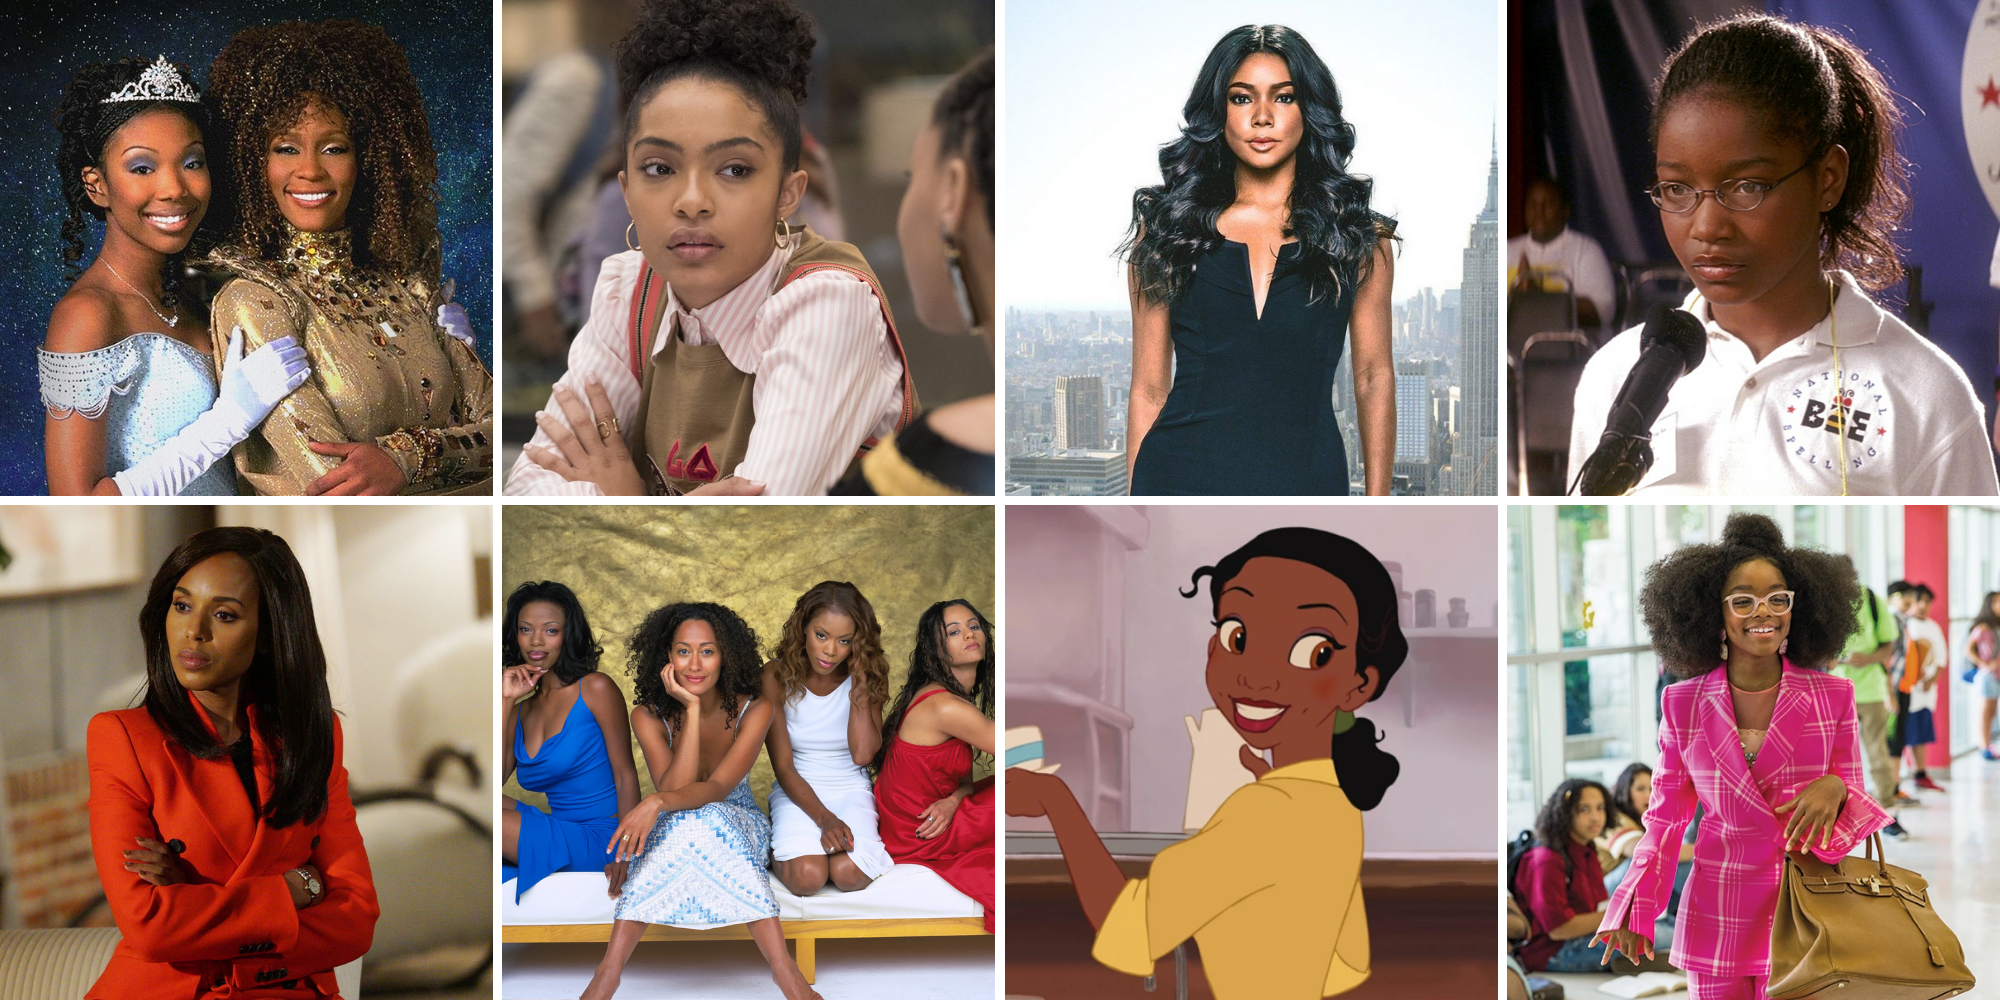 Shows and movies to watch that center Black women